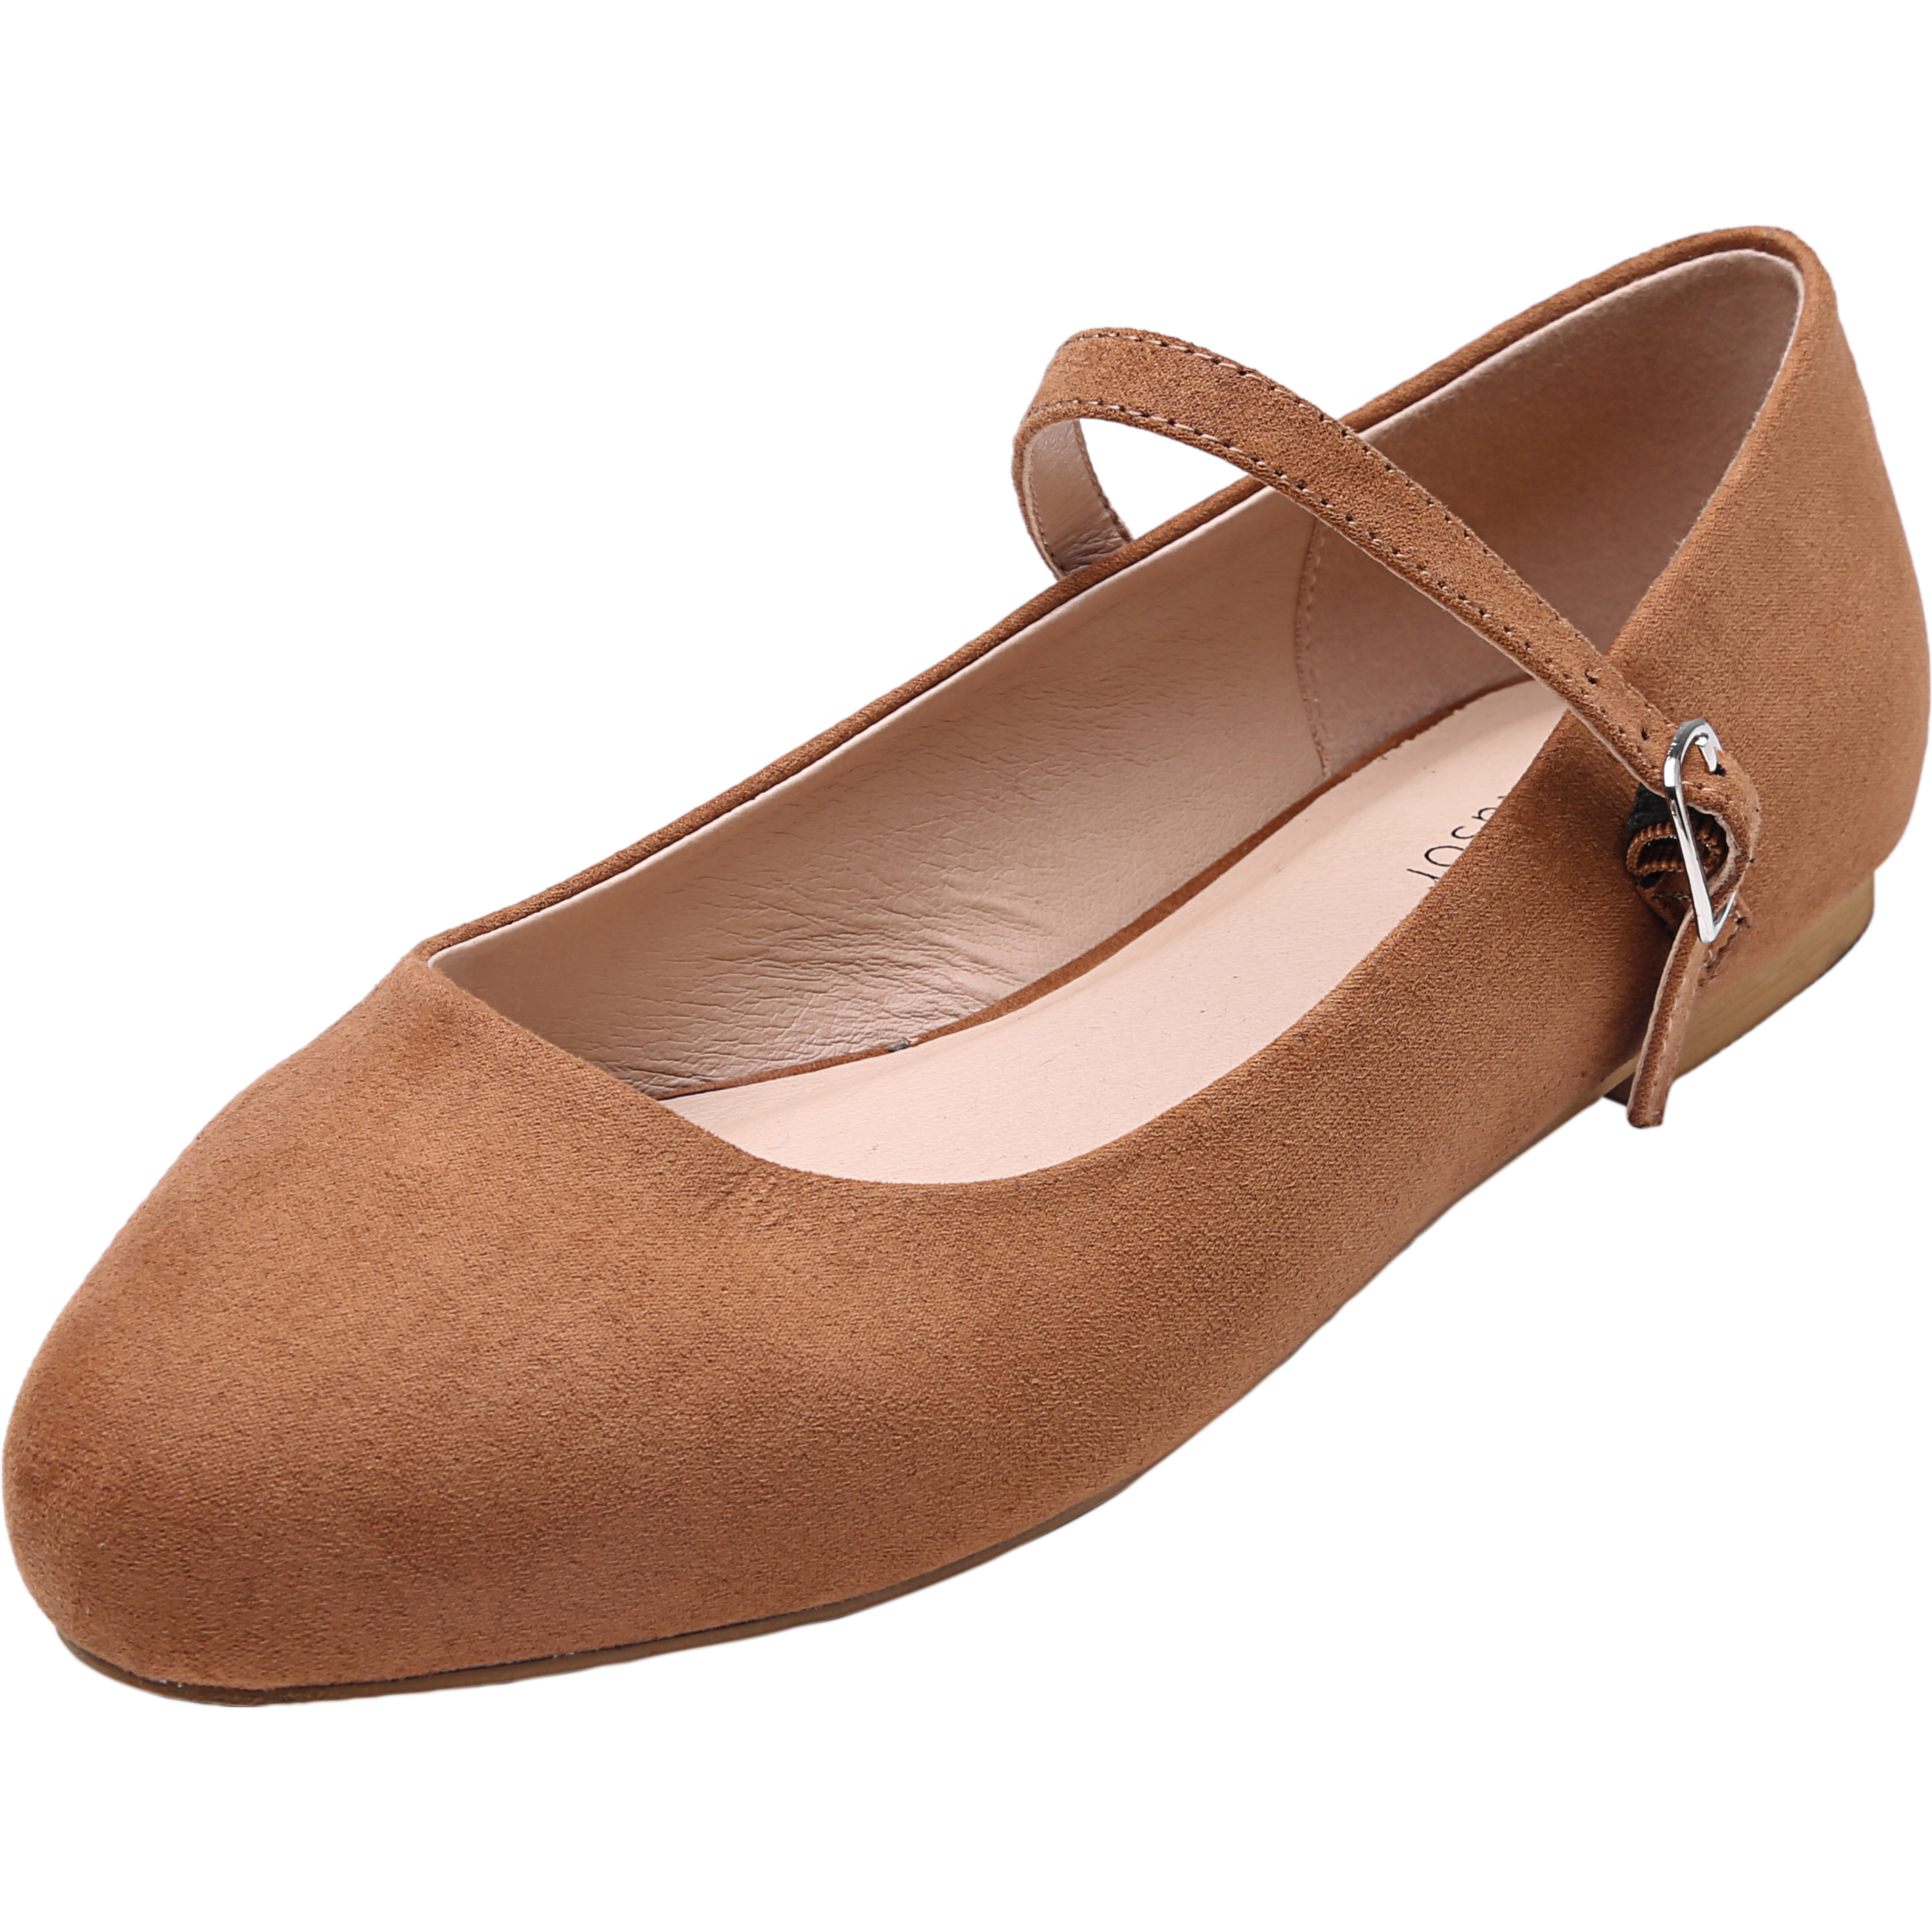 c46849e4ed68 US$ 49.99 - Women's Wide Width Flat Shoes - Comfortable Classic Pointy Toe  Mary Jane Ballet Flat - www.luoika-us.com